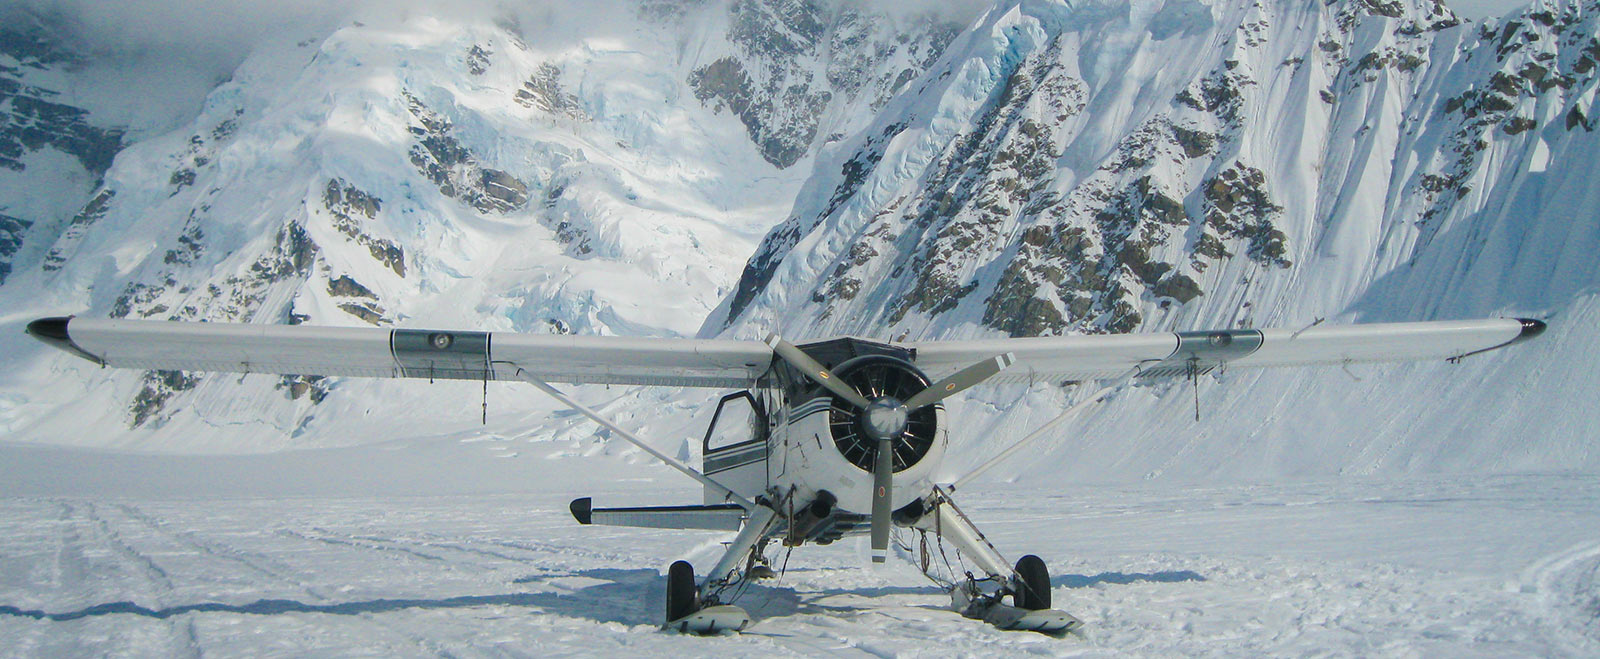 Denali National Park Glacier Landings Flight Tours